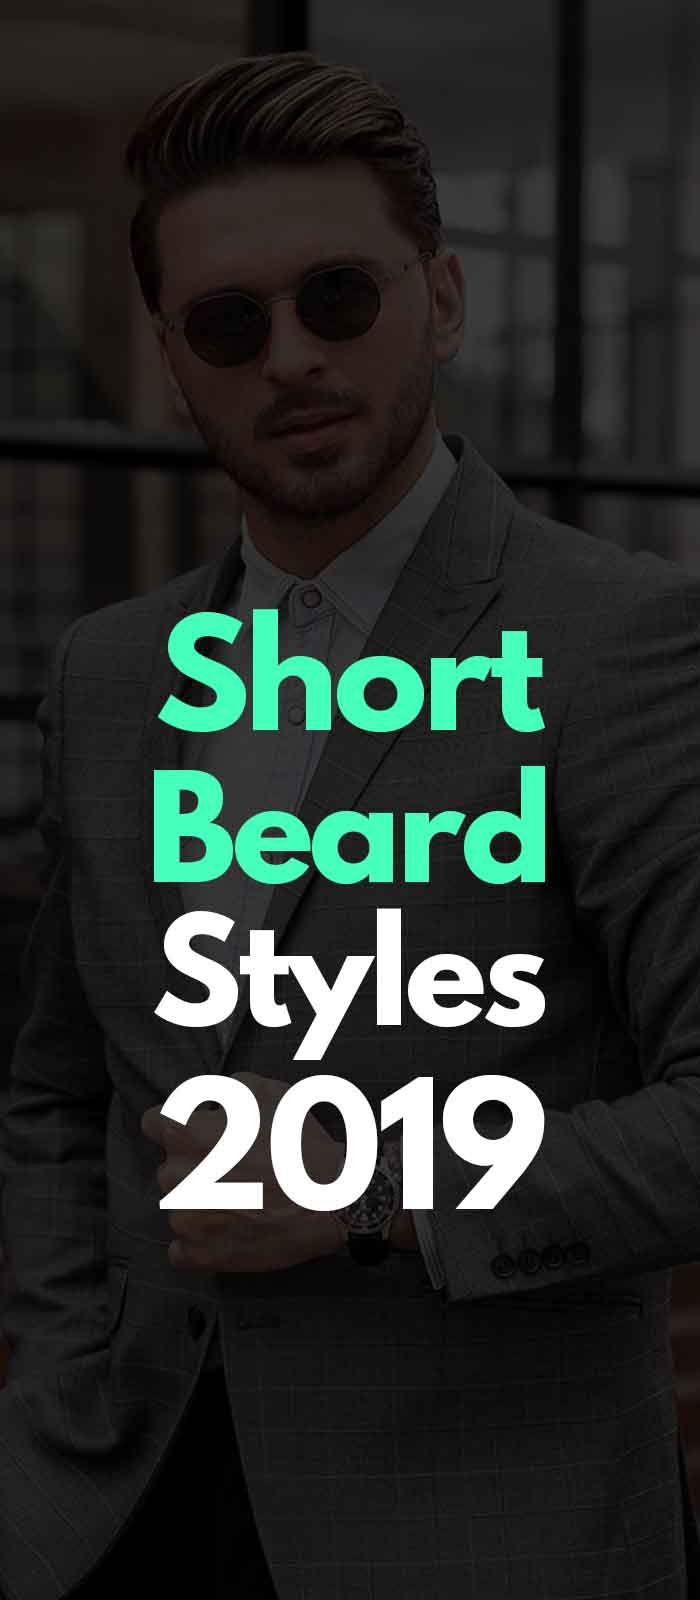 Short Beard style for men to try!